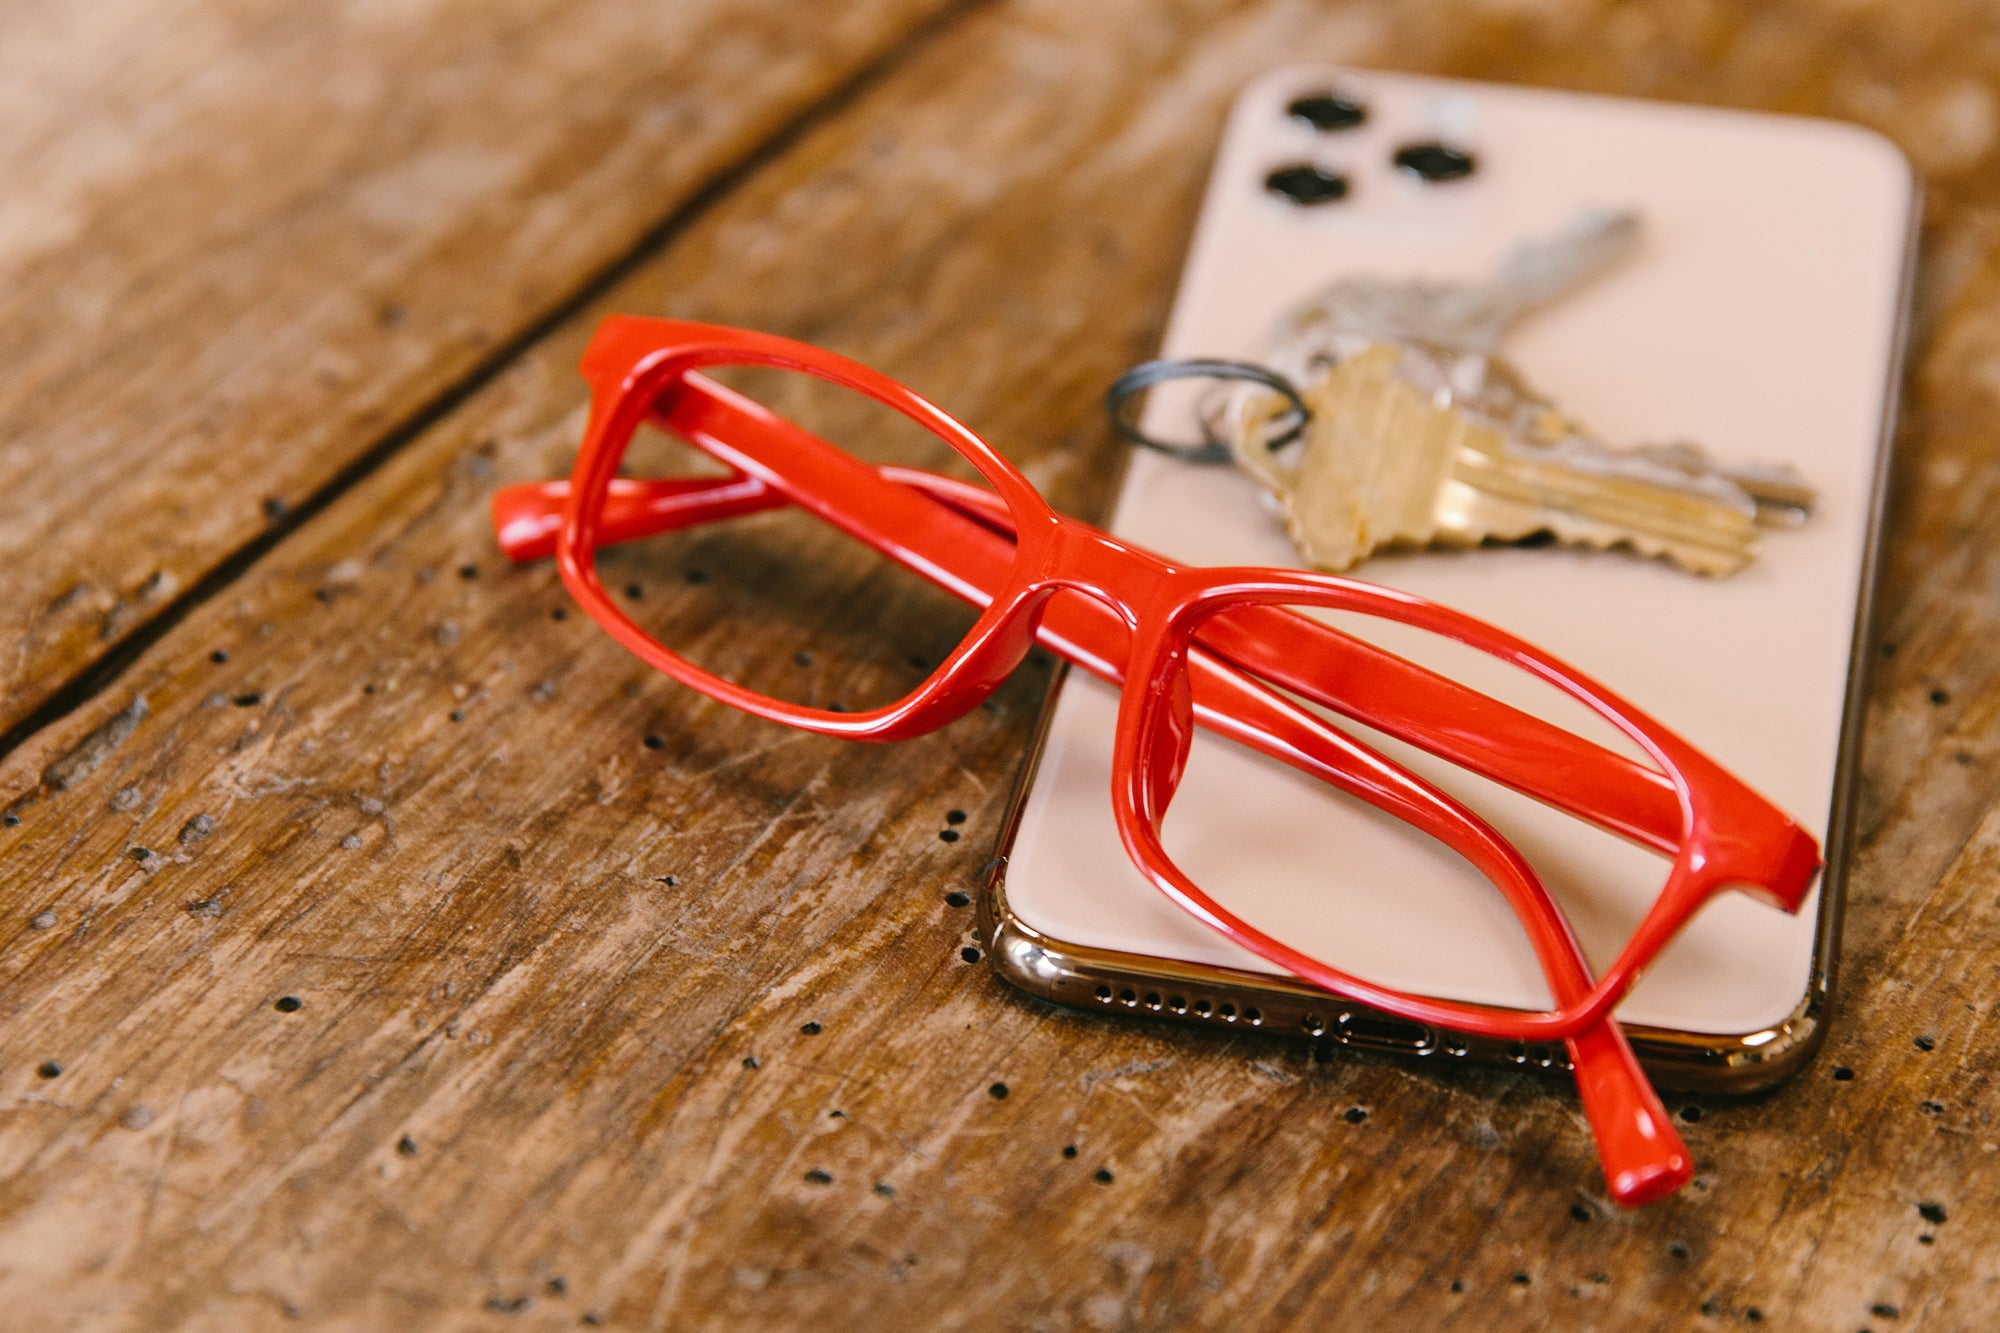 Peepers red reading glasses sitting on a phone and keys